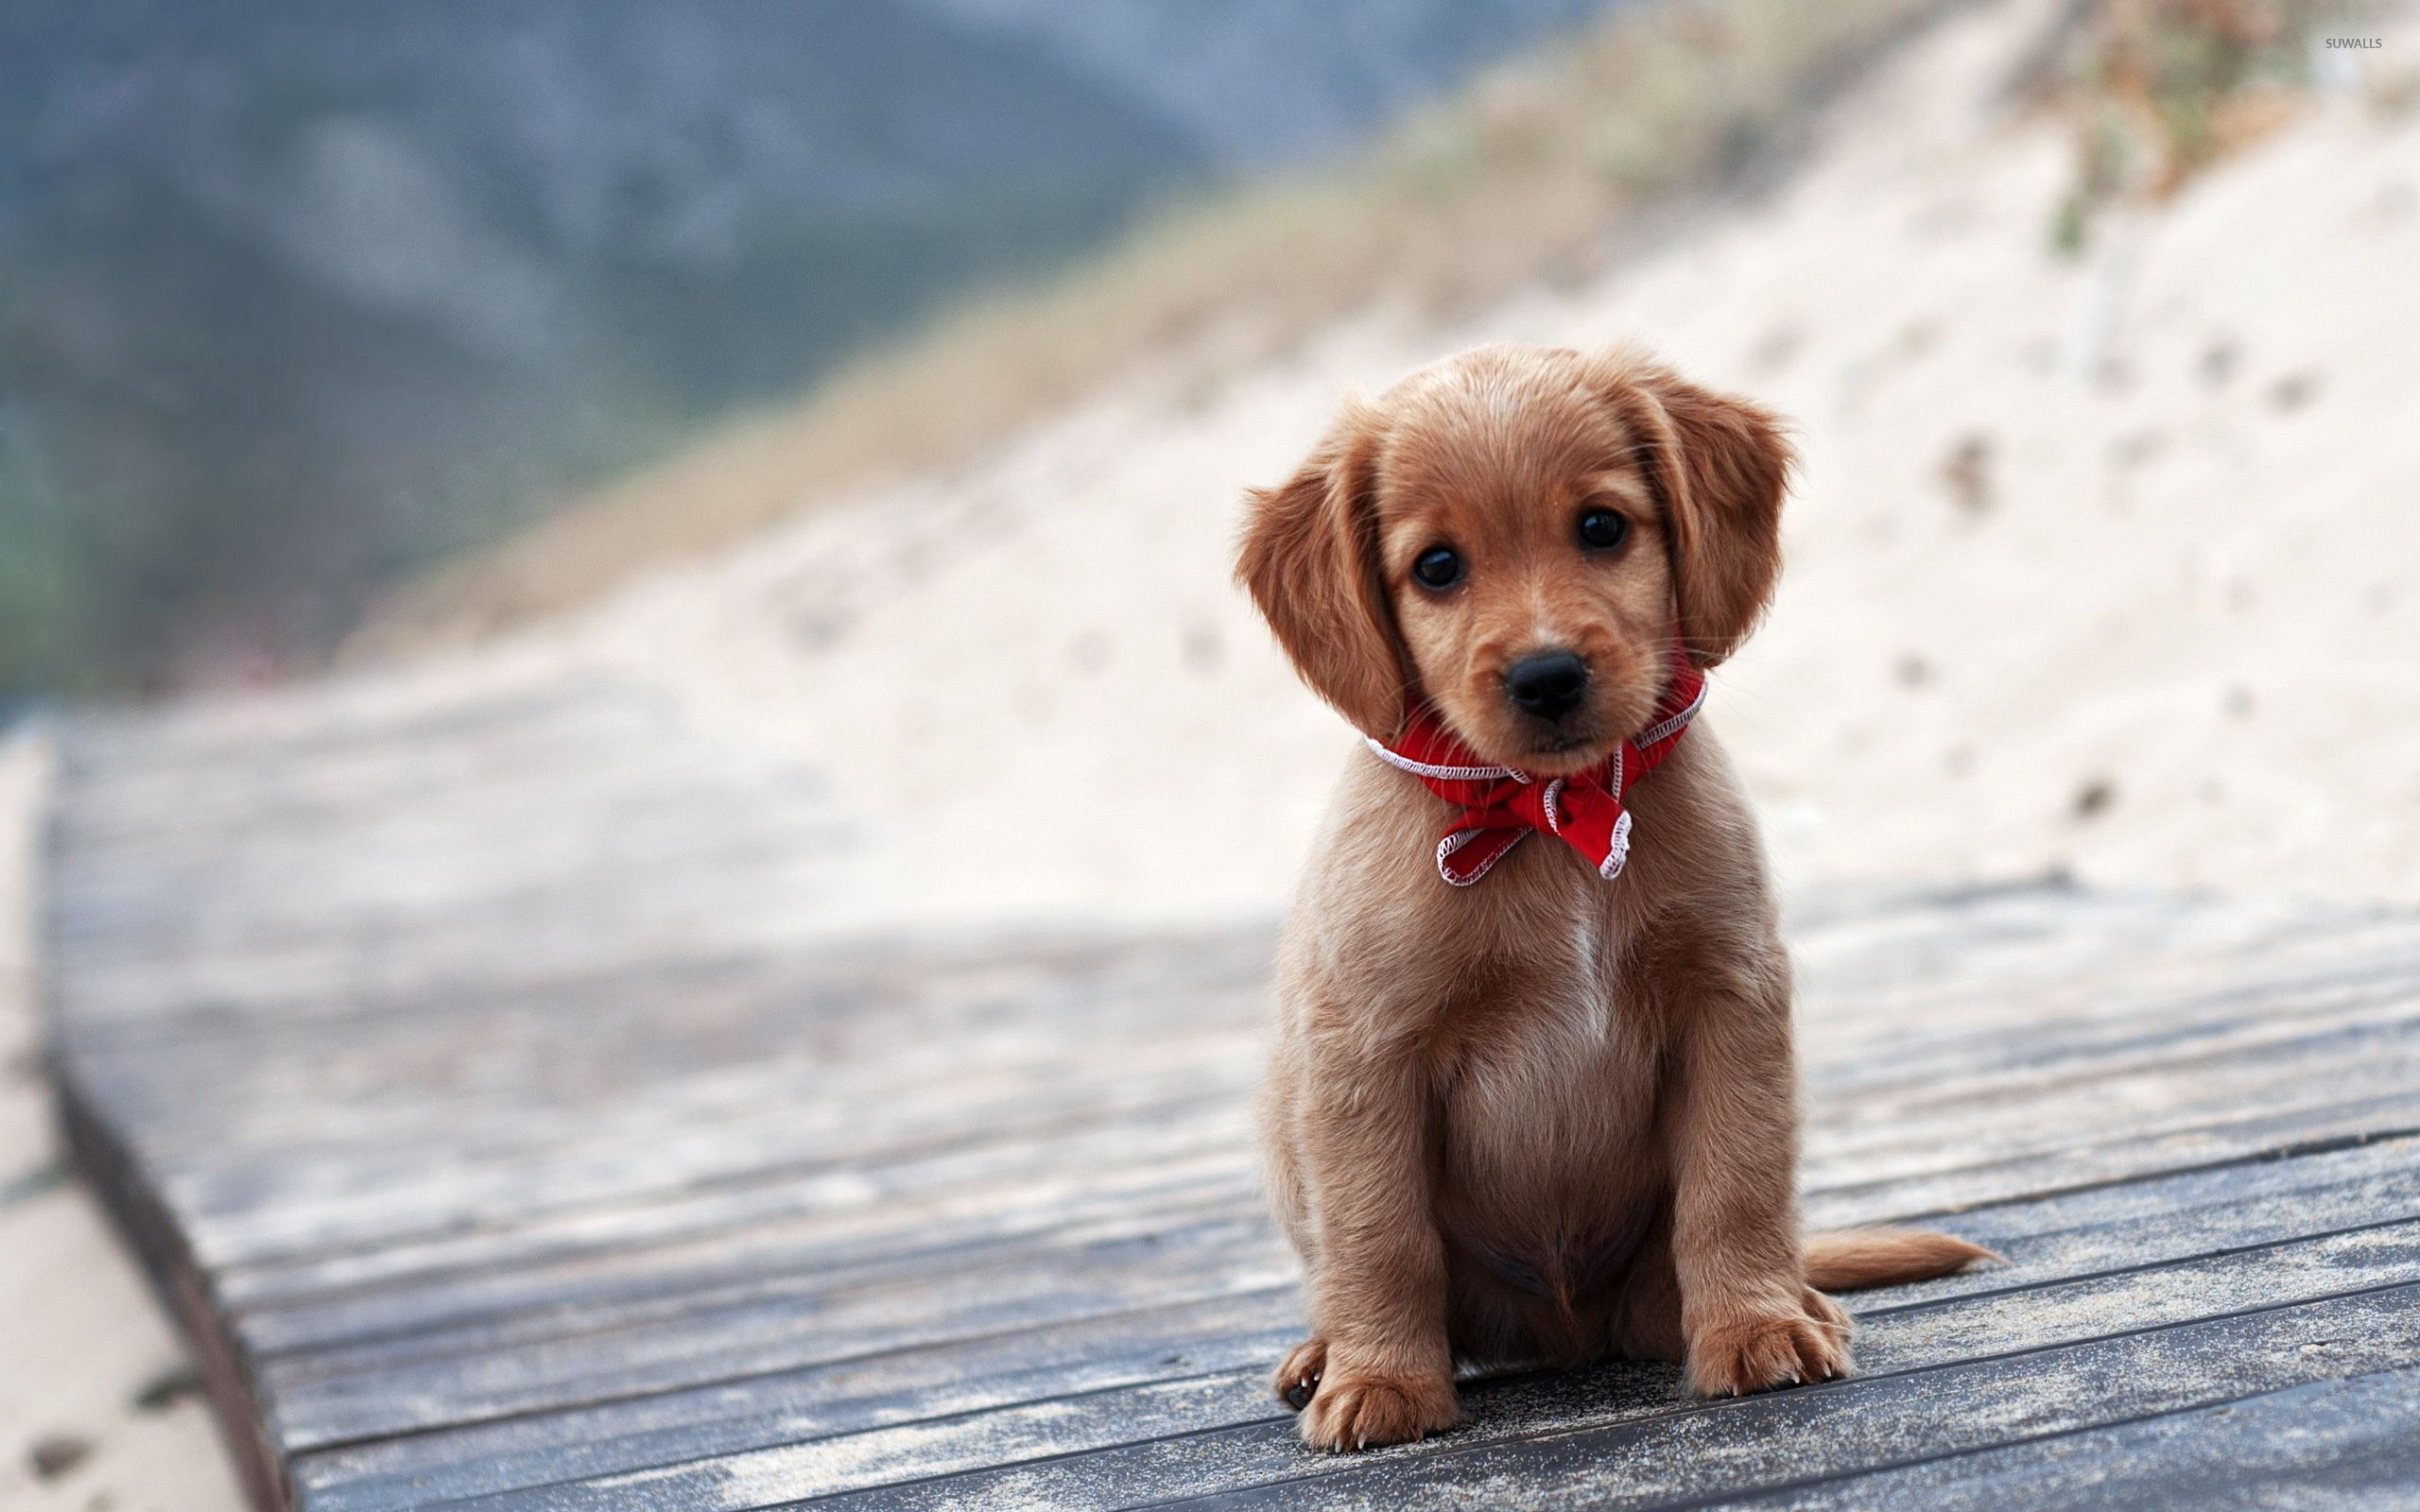 brown puppy wallpaper - animal wallpapers - #32833